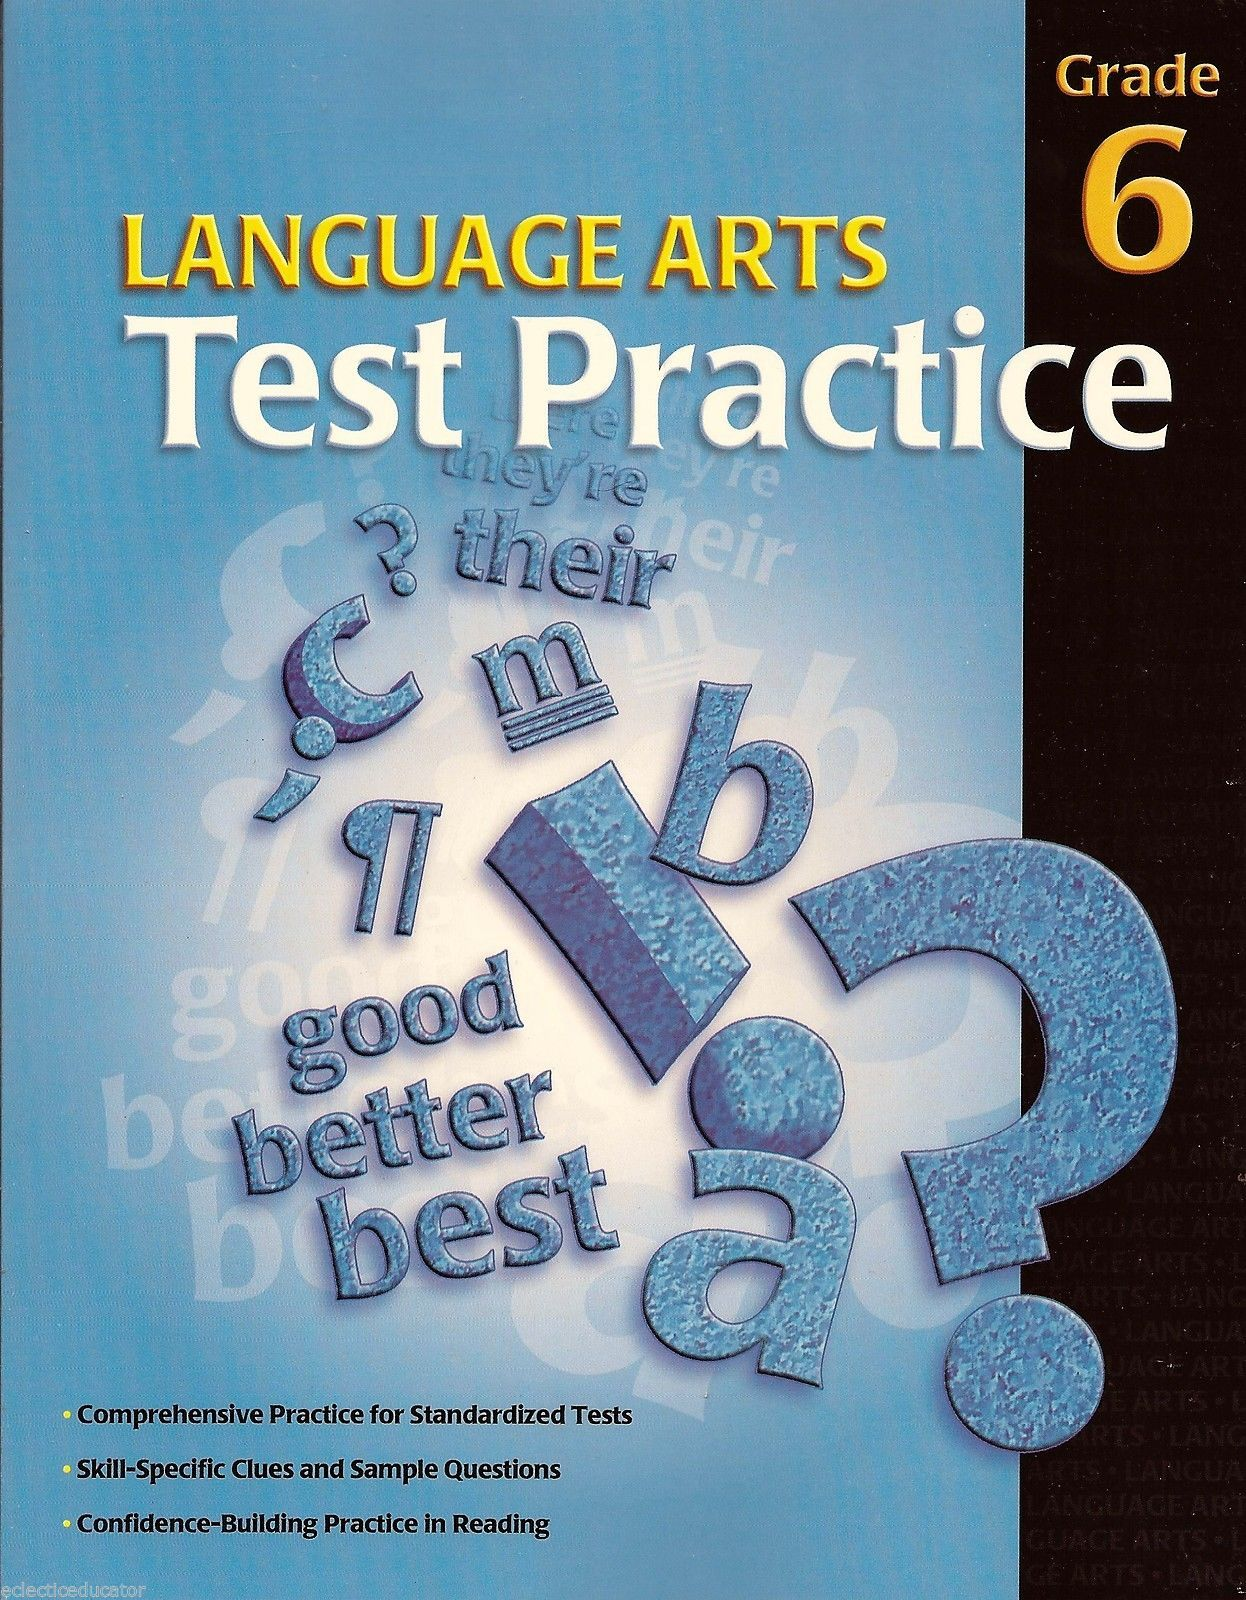 Language Arts Test Practice Grade 6 New School Specialty